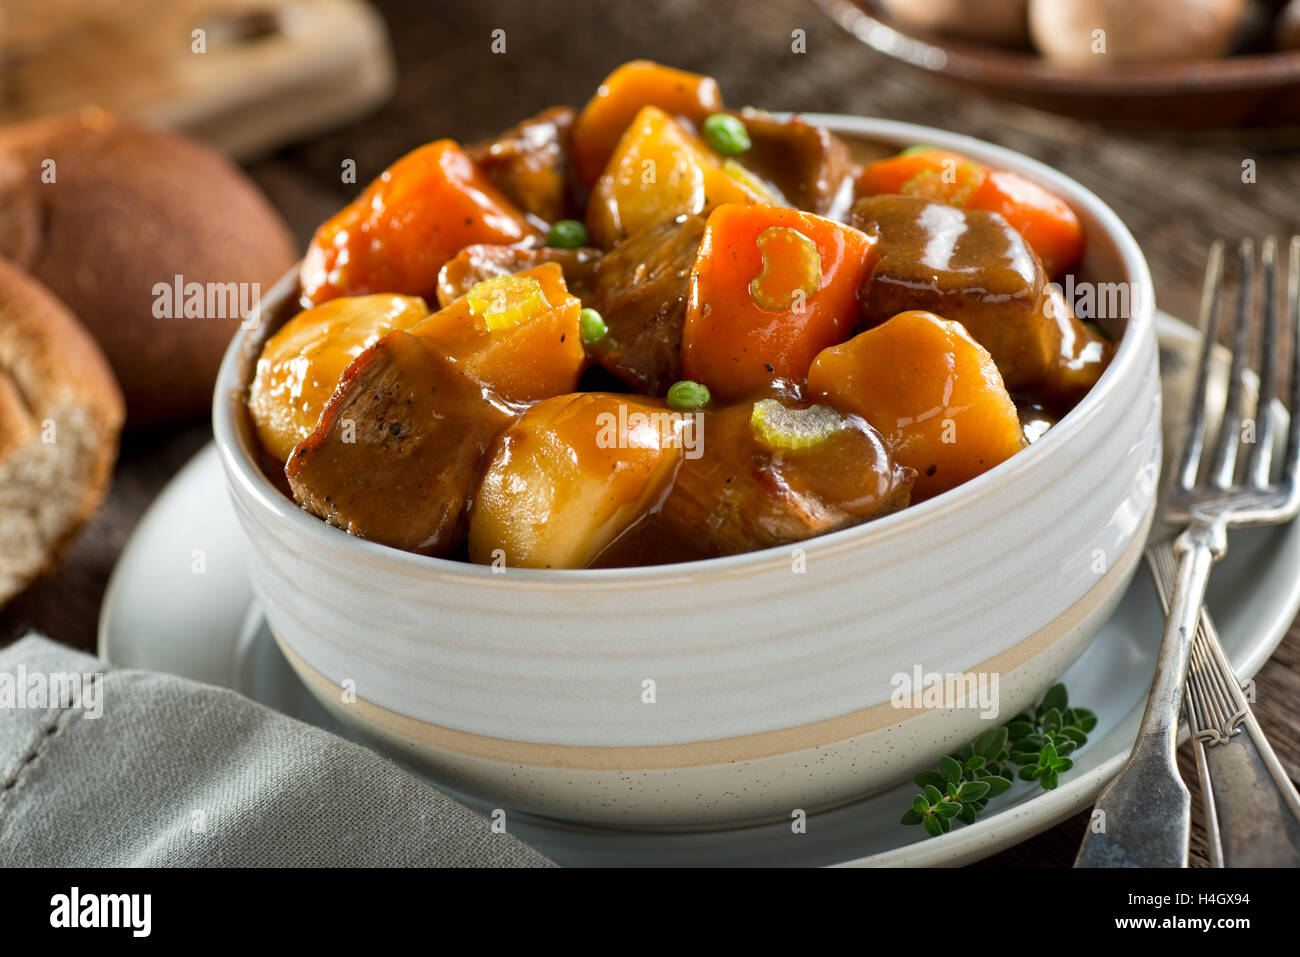 A delicious bowl of rich and hearty beef stew with potato, turnip, carrot, celery, and peas. - Stock Image